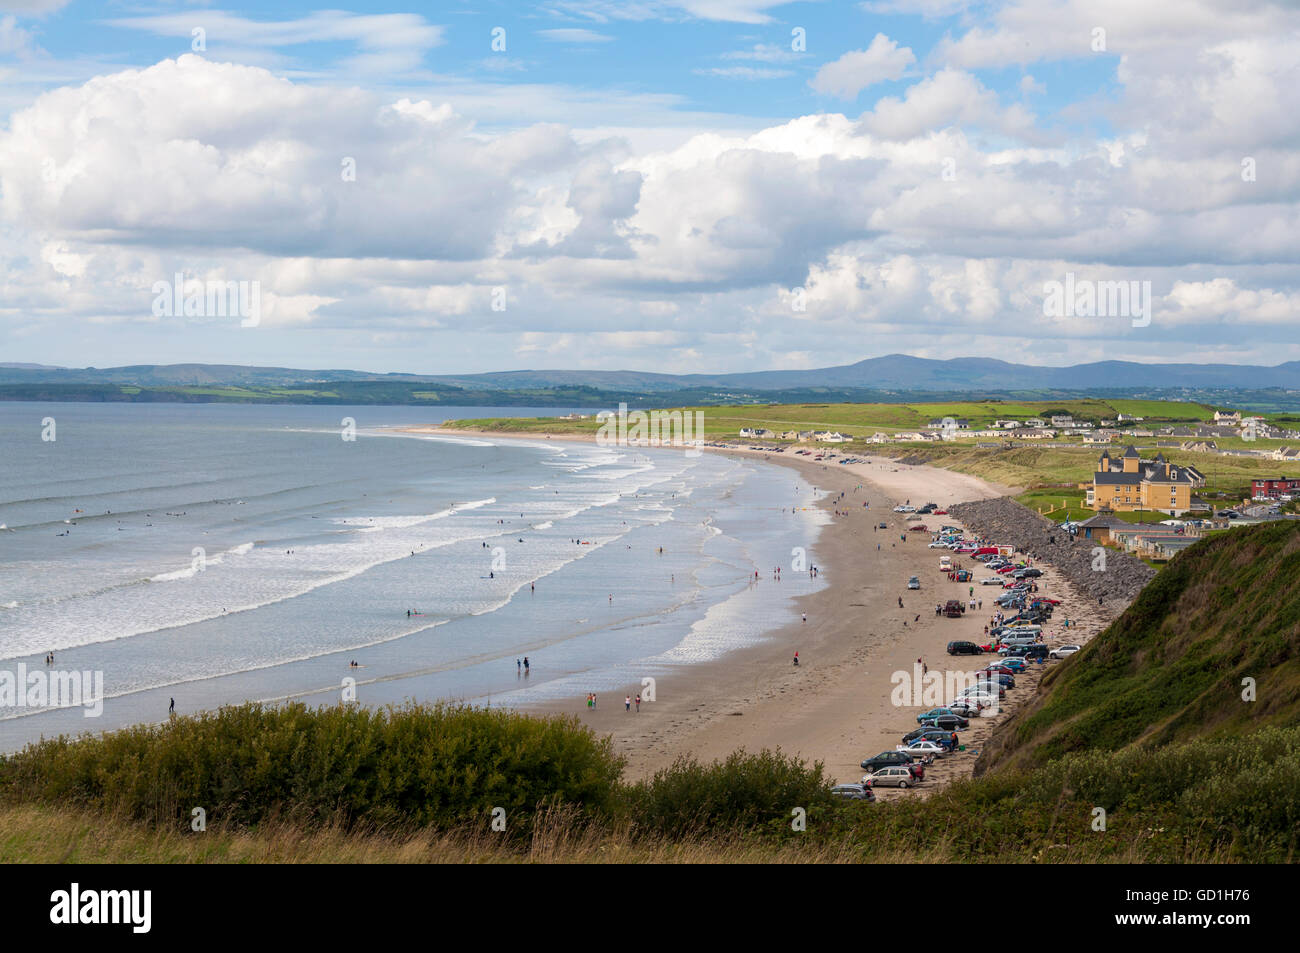 Local Events Donegal - Donegal Events - Festivals and